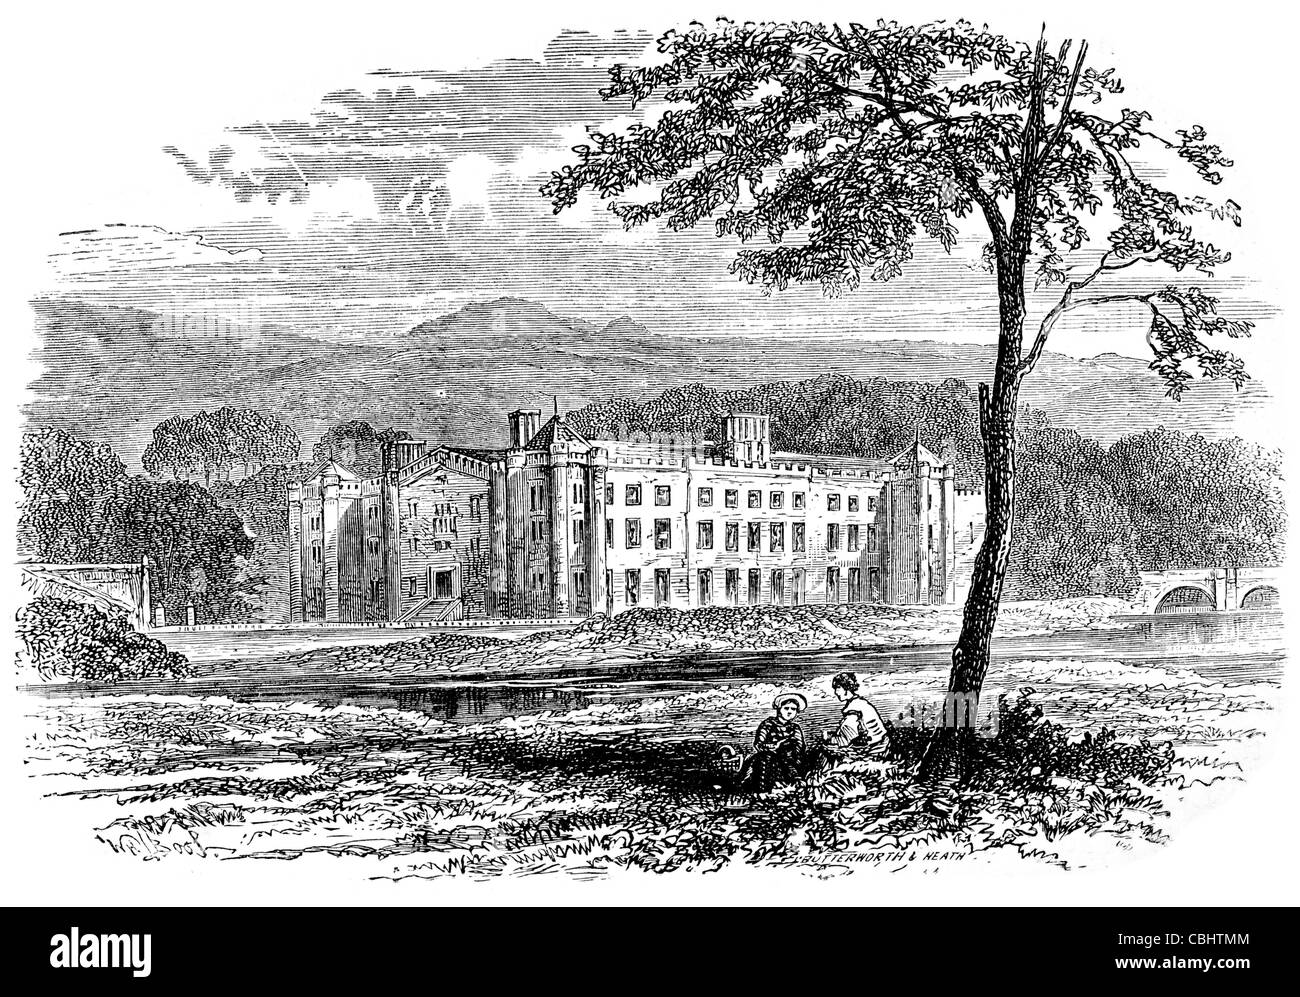 Antrim Castle Massereene Ireland 1861 Sir John Clotworthy fort palace mansion manor architecture tourist attraction - Stock Image